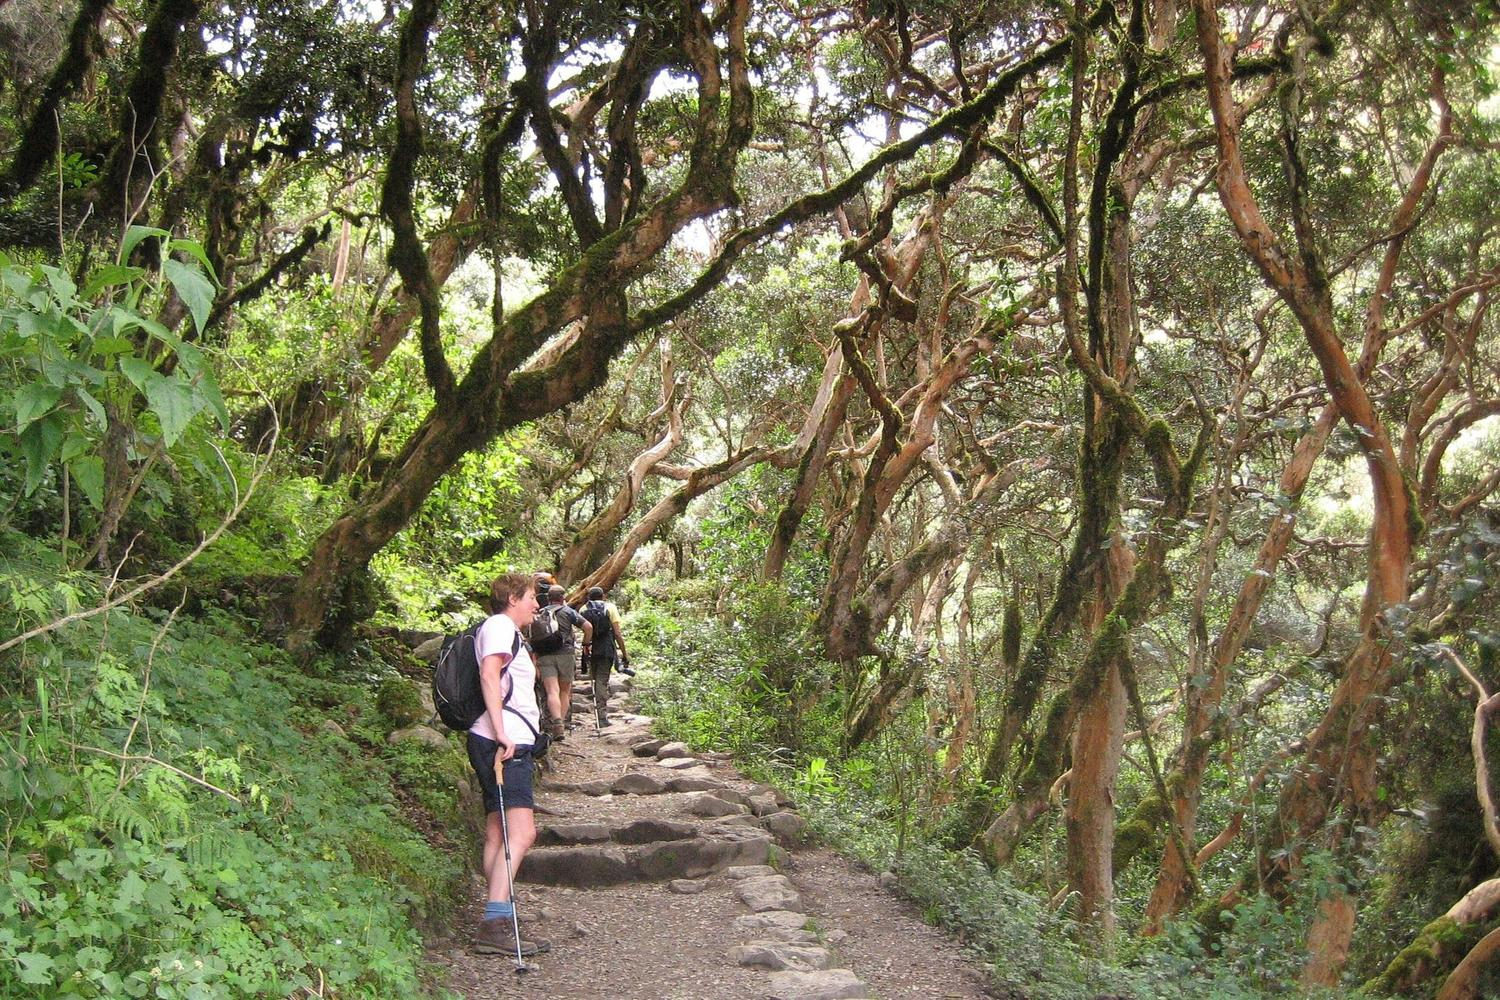 The early stages of the Inca Trail to Machu Picchu